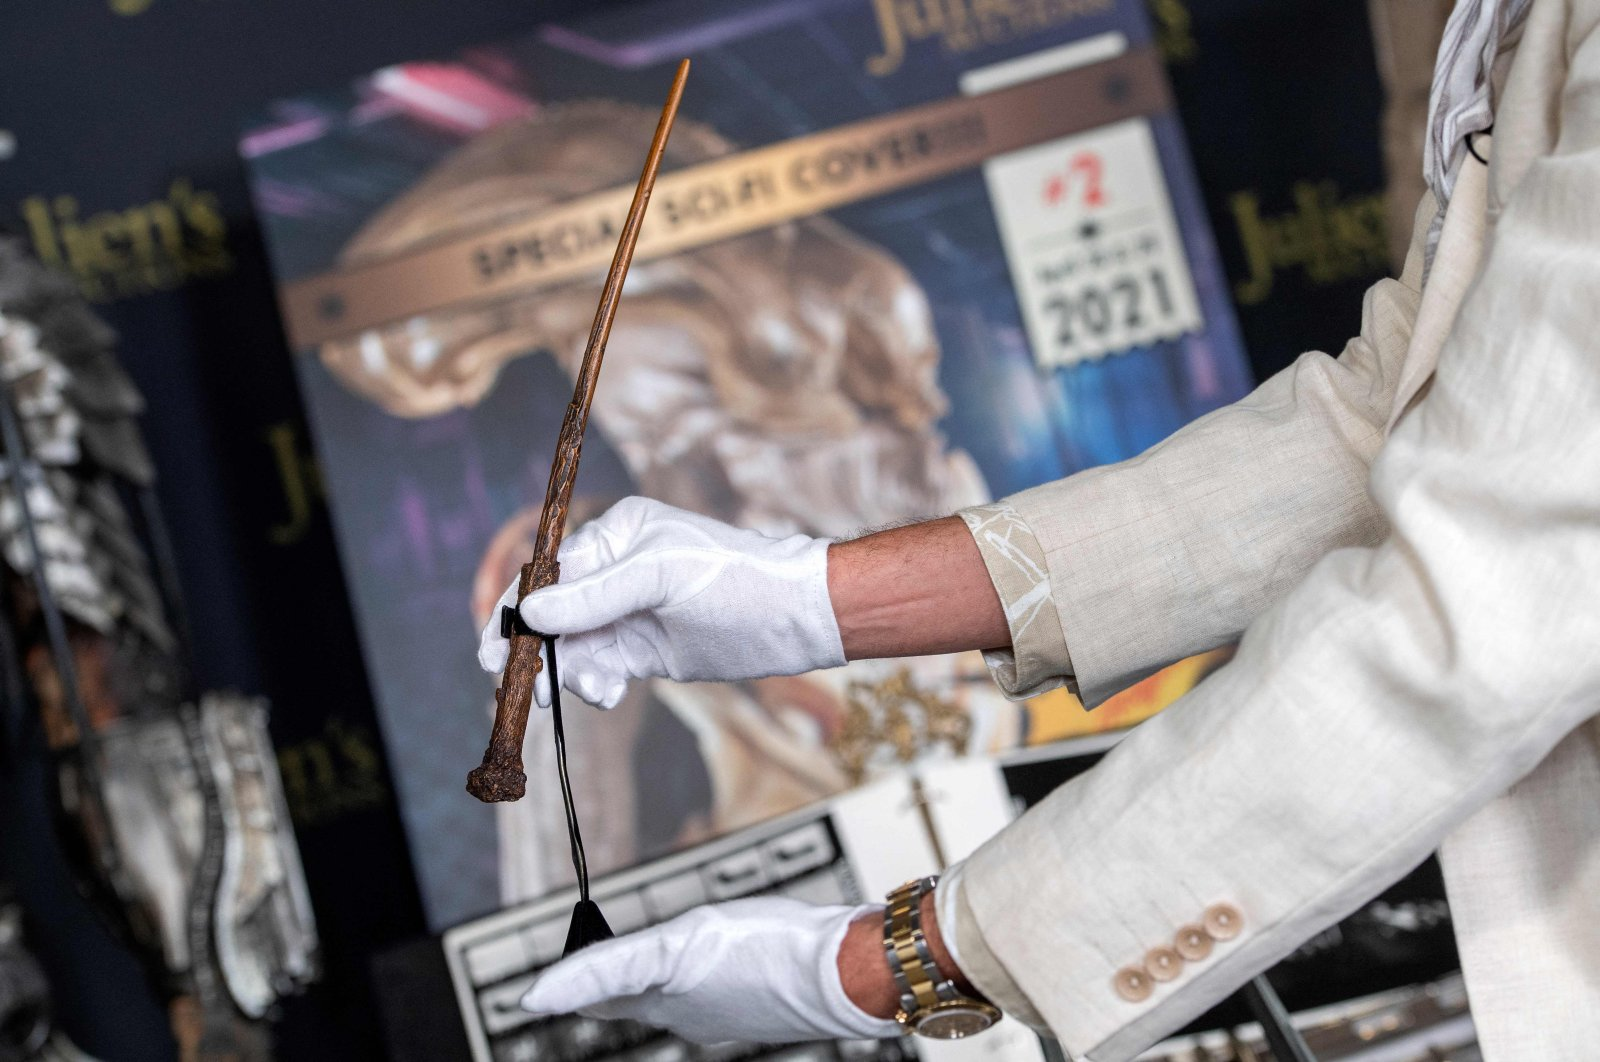 """An employee showcases Daniel Radcliffe's Harry Potter wand from """"Harry Potter and The Gobelet of Fire"""" at the preview of Julien's Auctions Hollywood Sci-Fi, Action Fantasy and More auction in Beverly Hills, California, March 10, 2021. (AFP Photo)"""